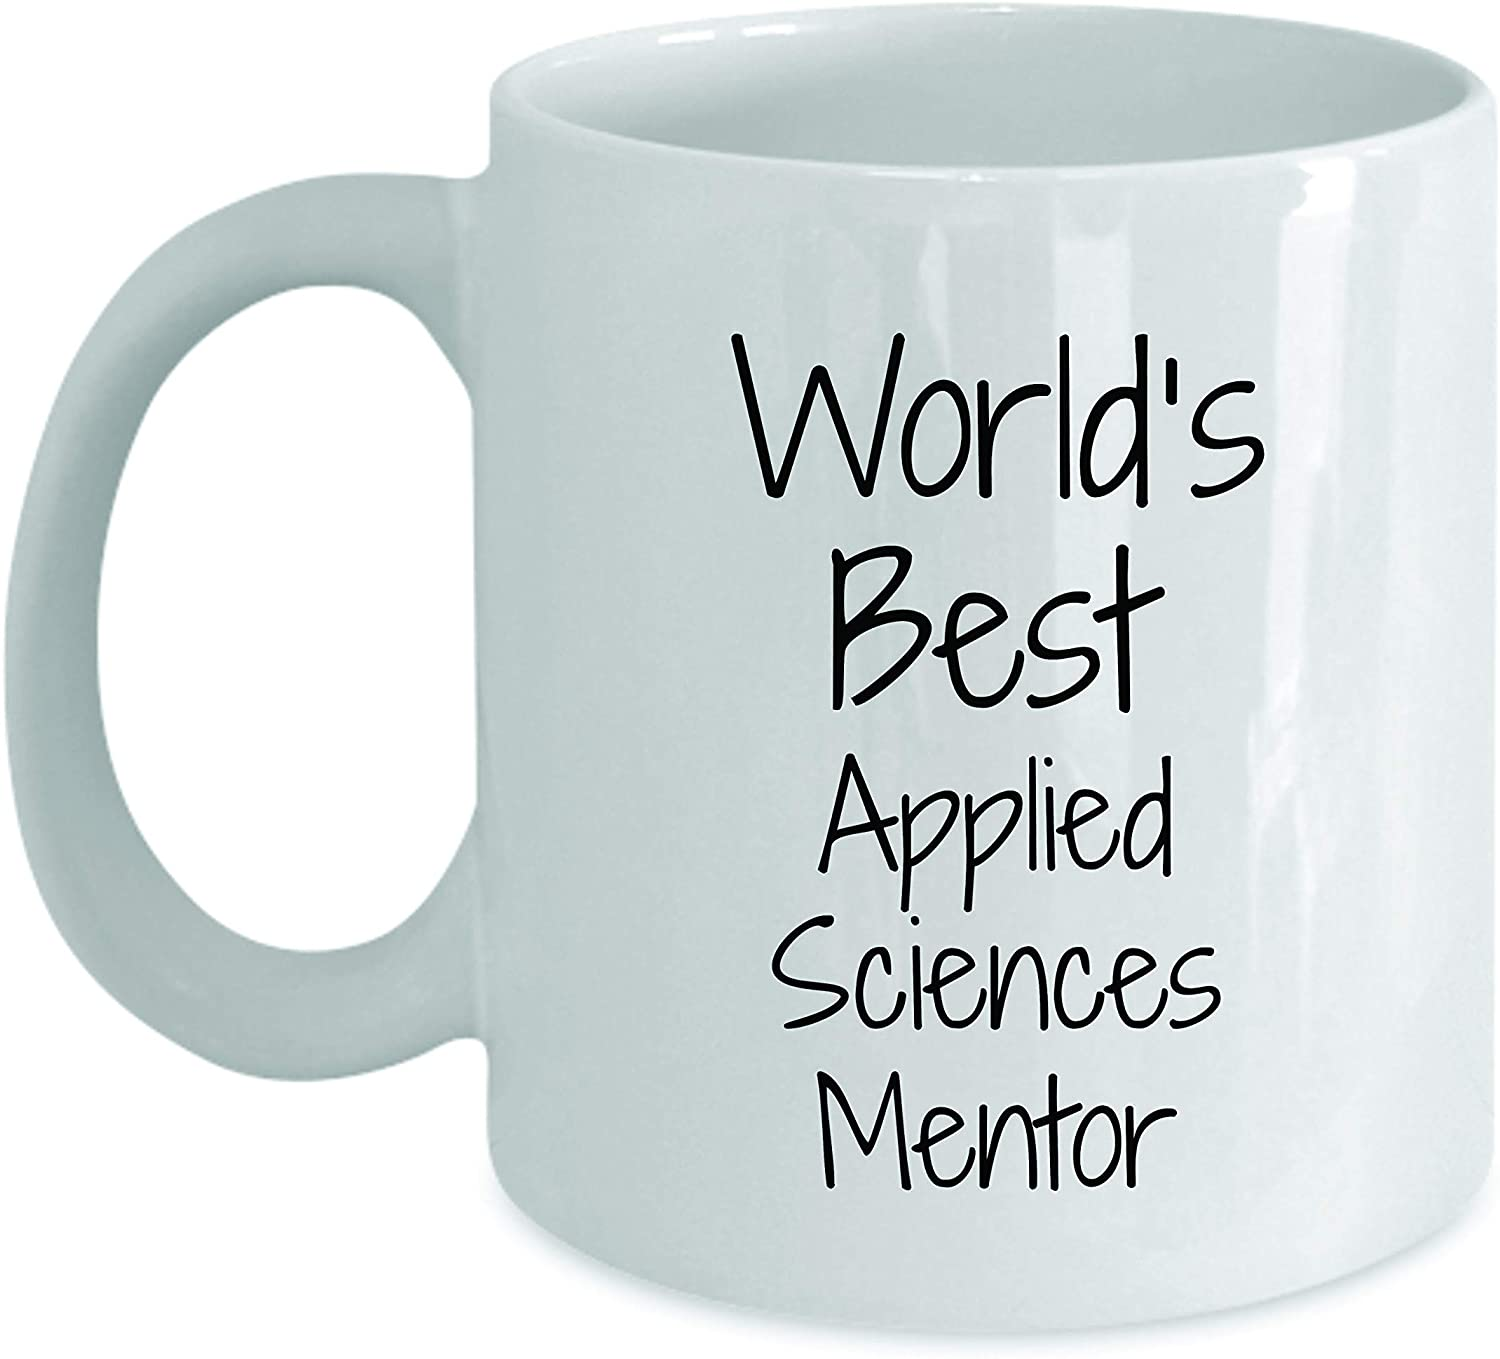 Gift For Applied Sciences Mentor - World's Best - Fun Novelty Gifts Idea Coffee Tea Cup Funny Presents Birthday Christmas Anniversary Thank You Appreciation 11oz White Mug